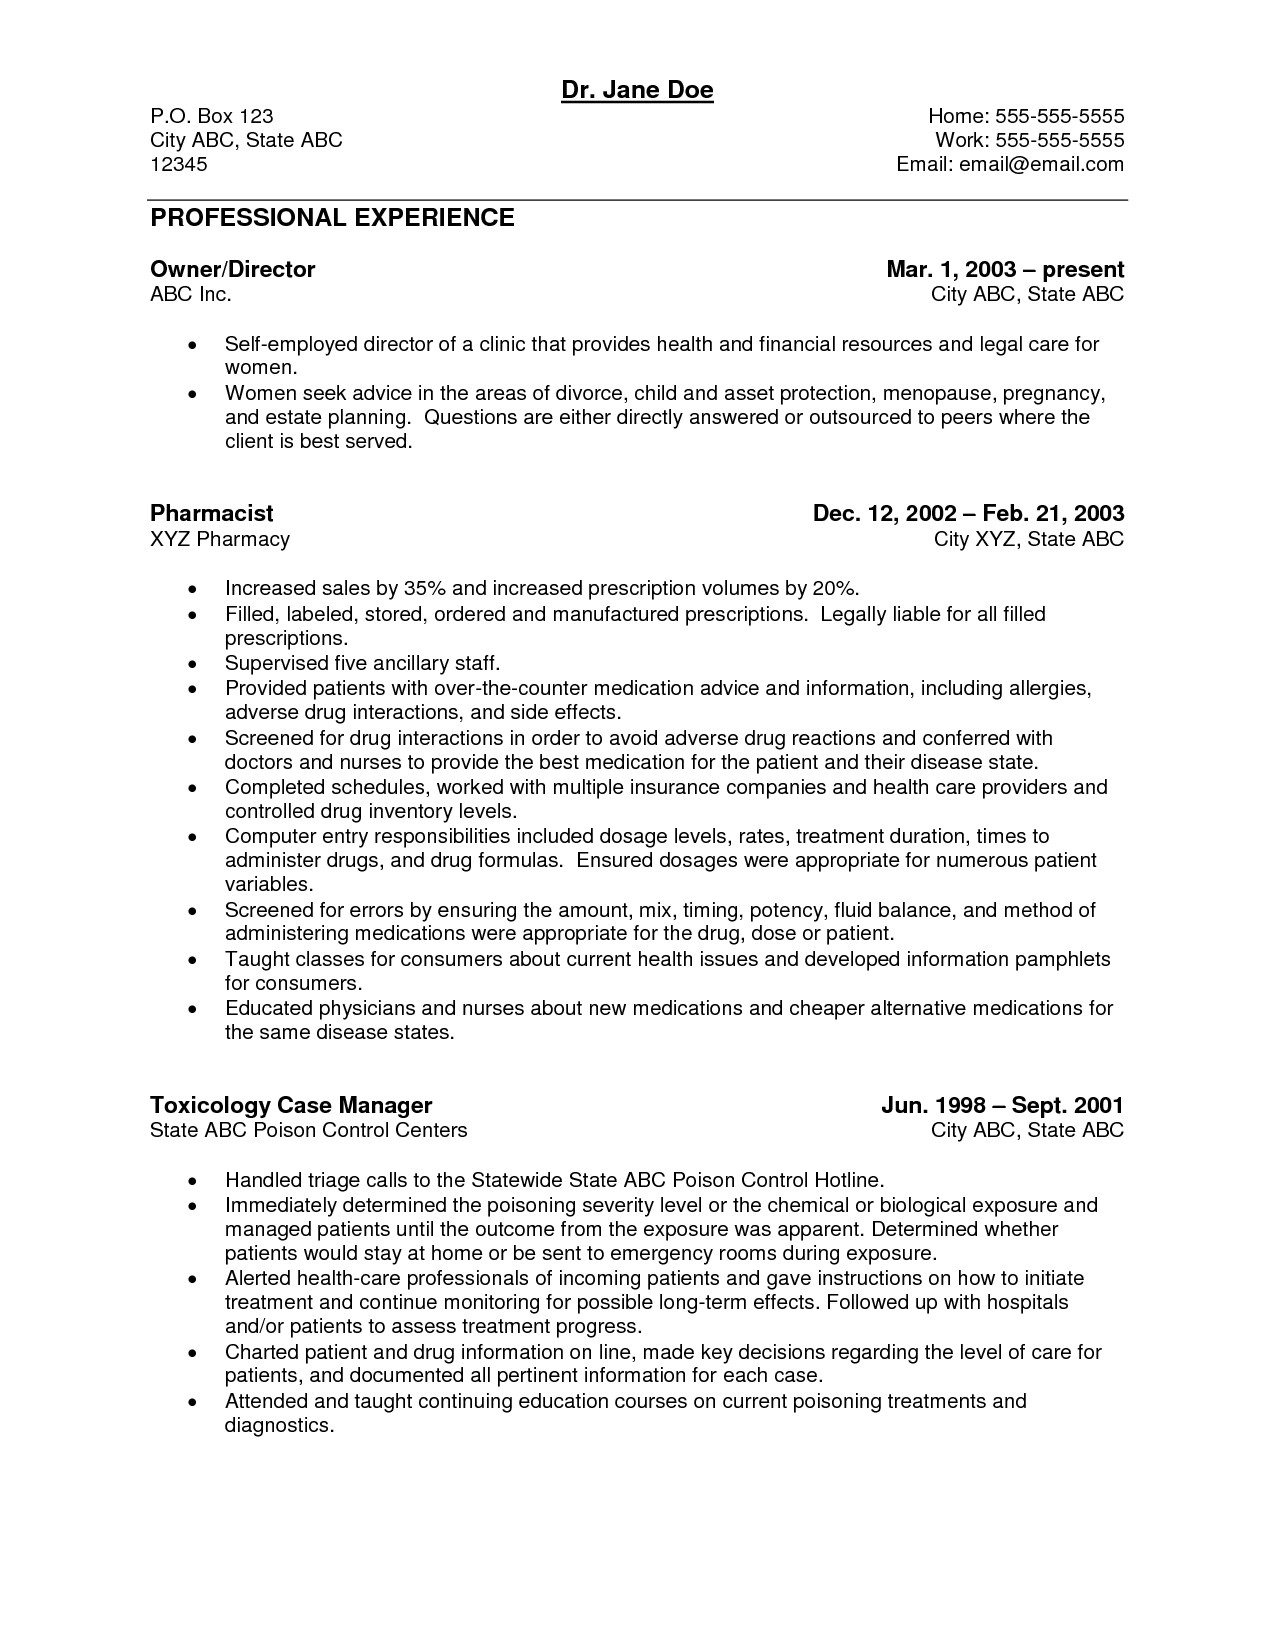 Medical Office Manager Resume - Medical Fice Manager Resume Examples Best Management Resume